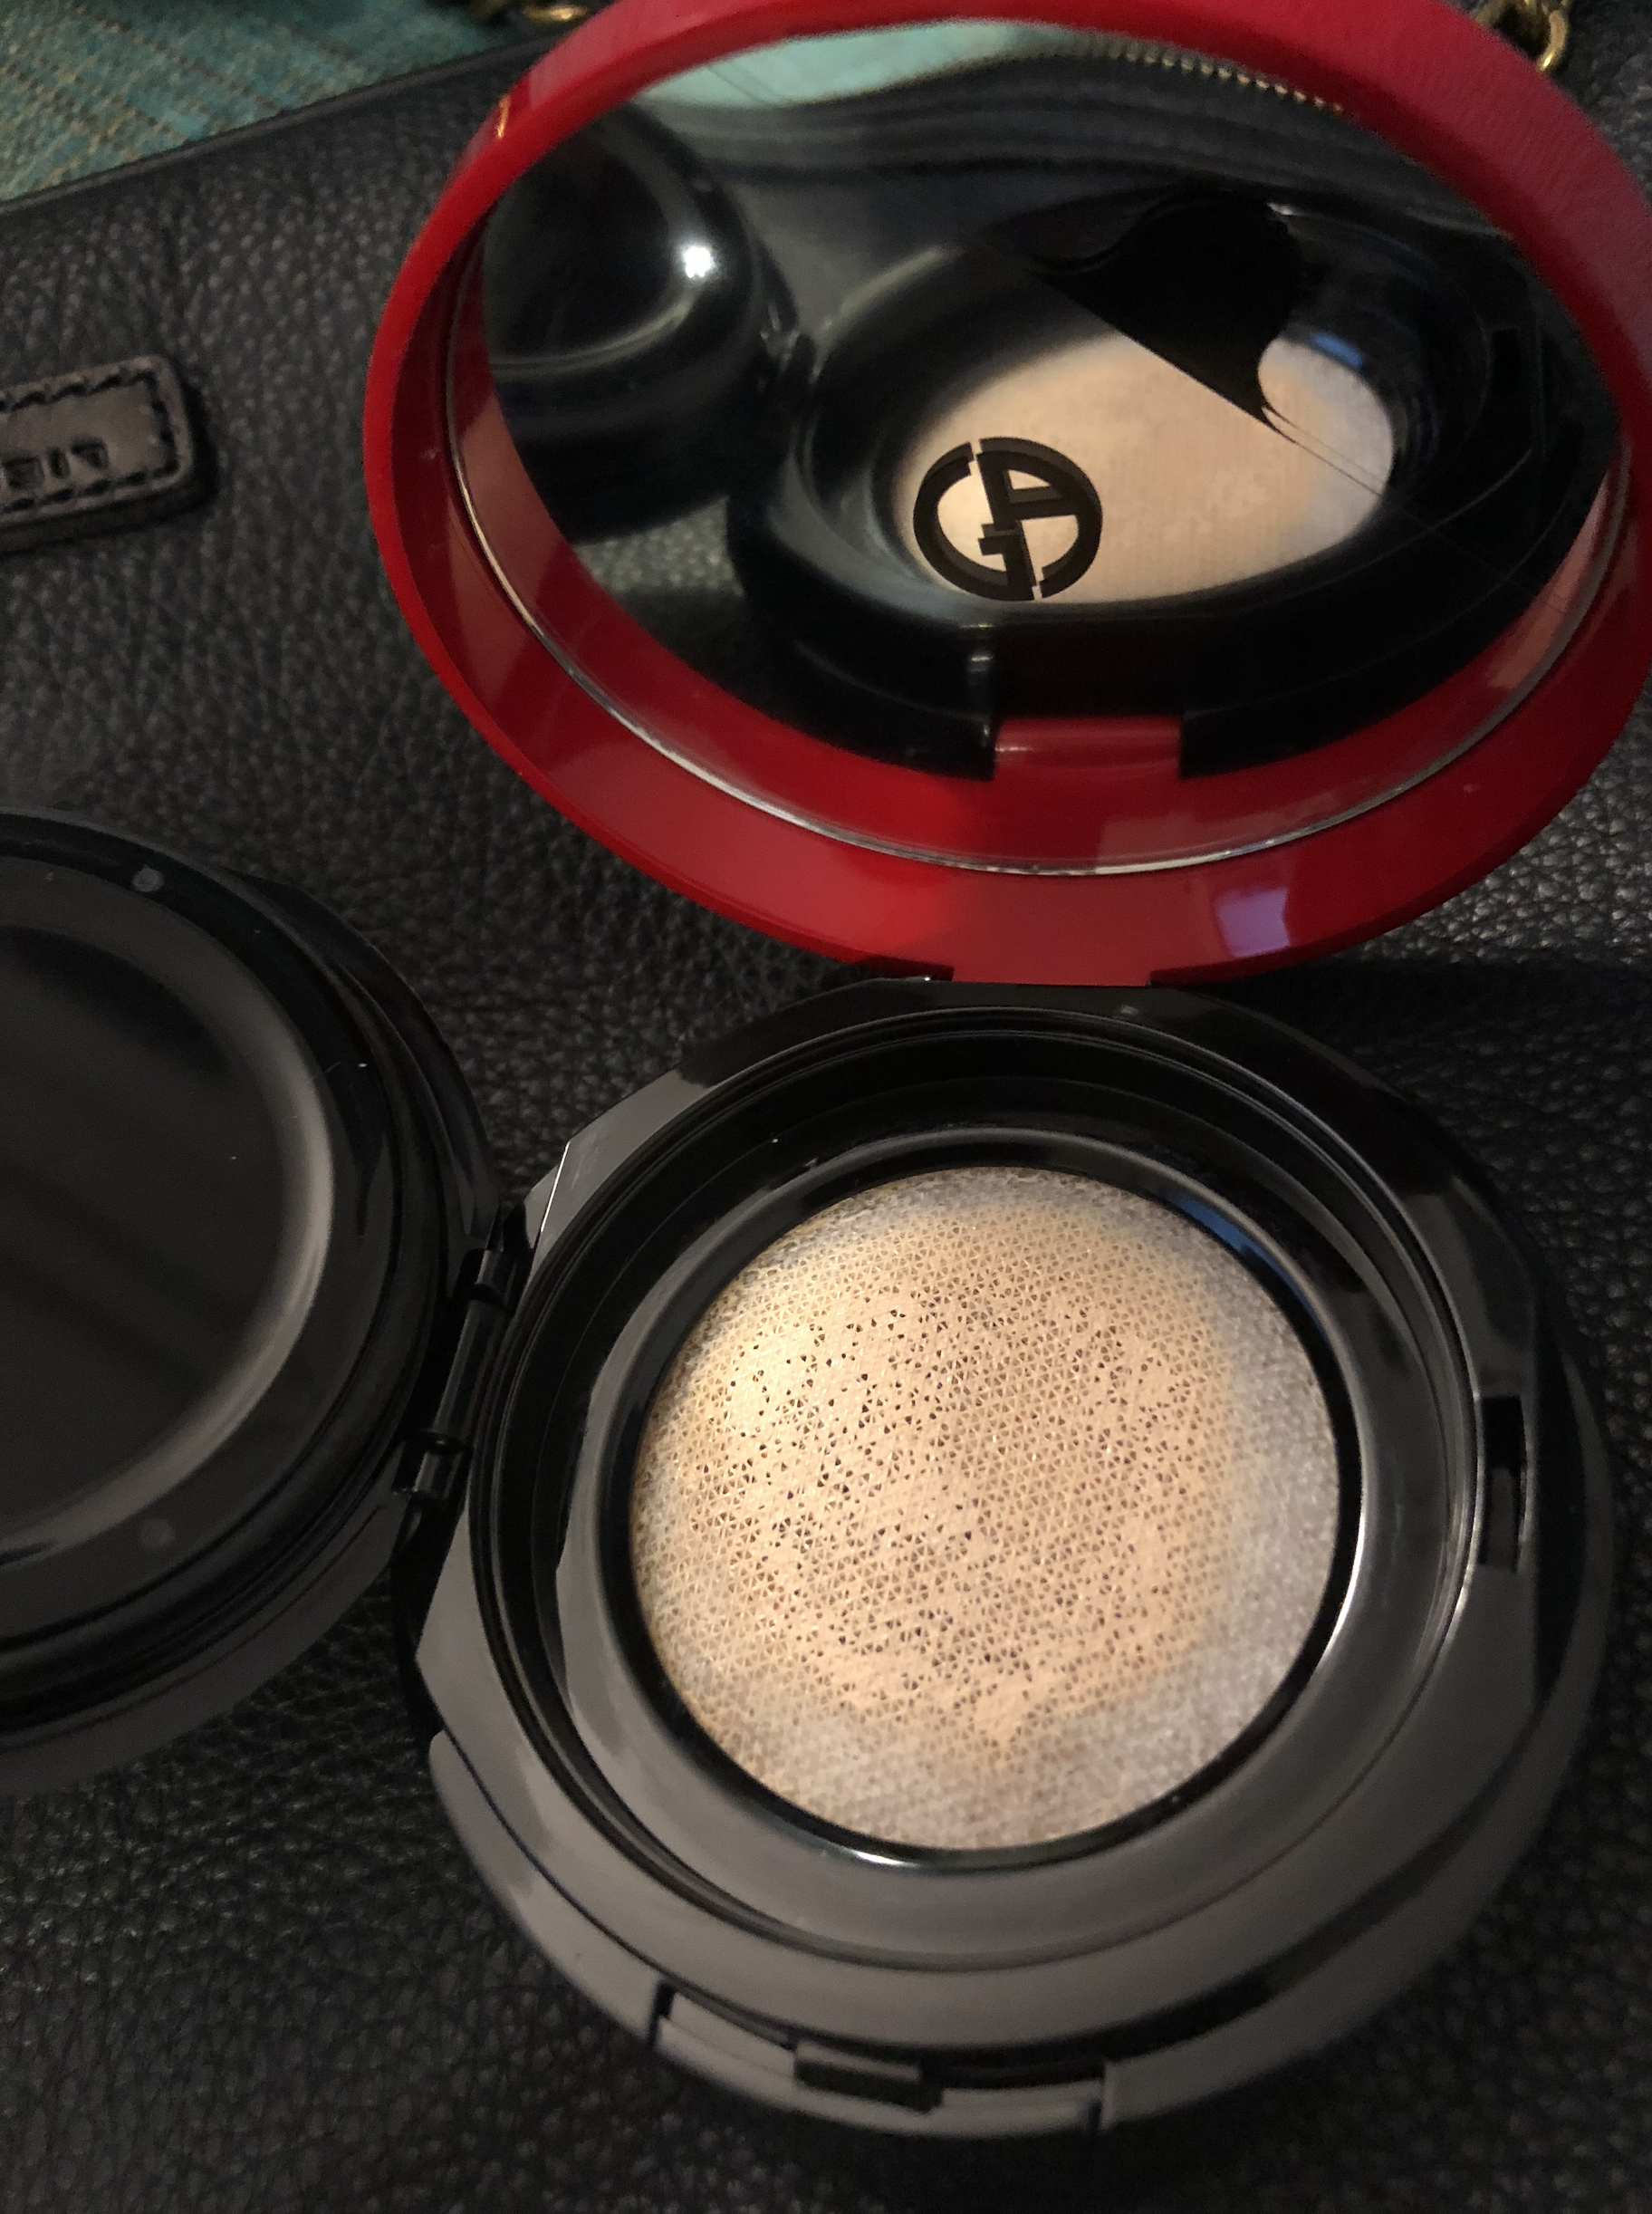 My Armani To Go Cushion Foundation in Colour 2